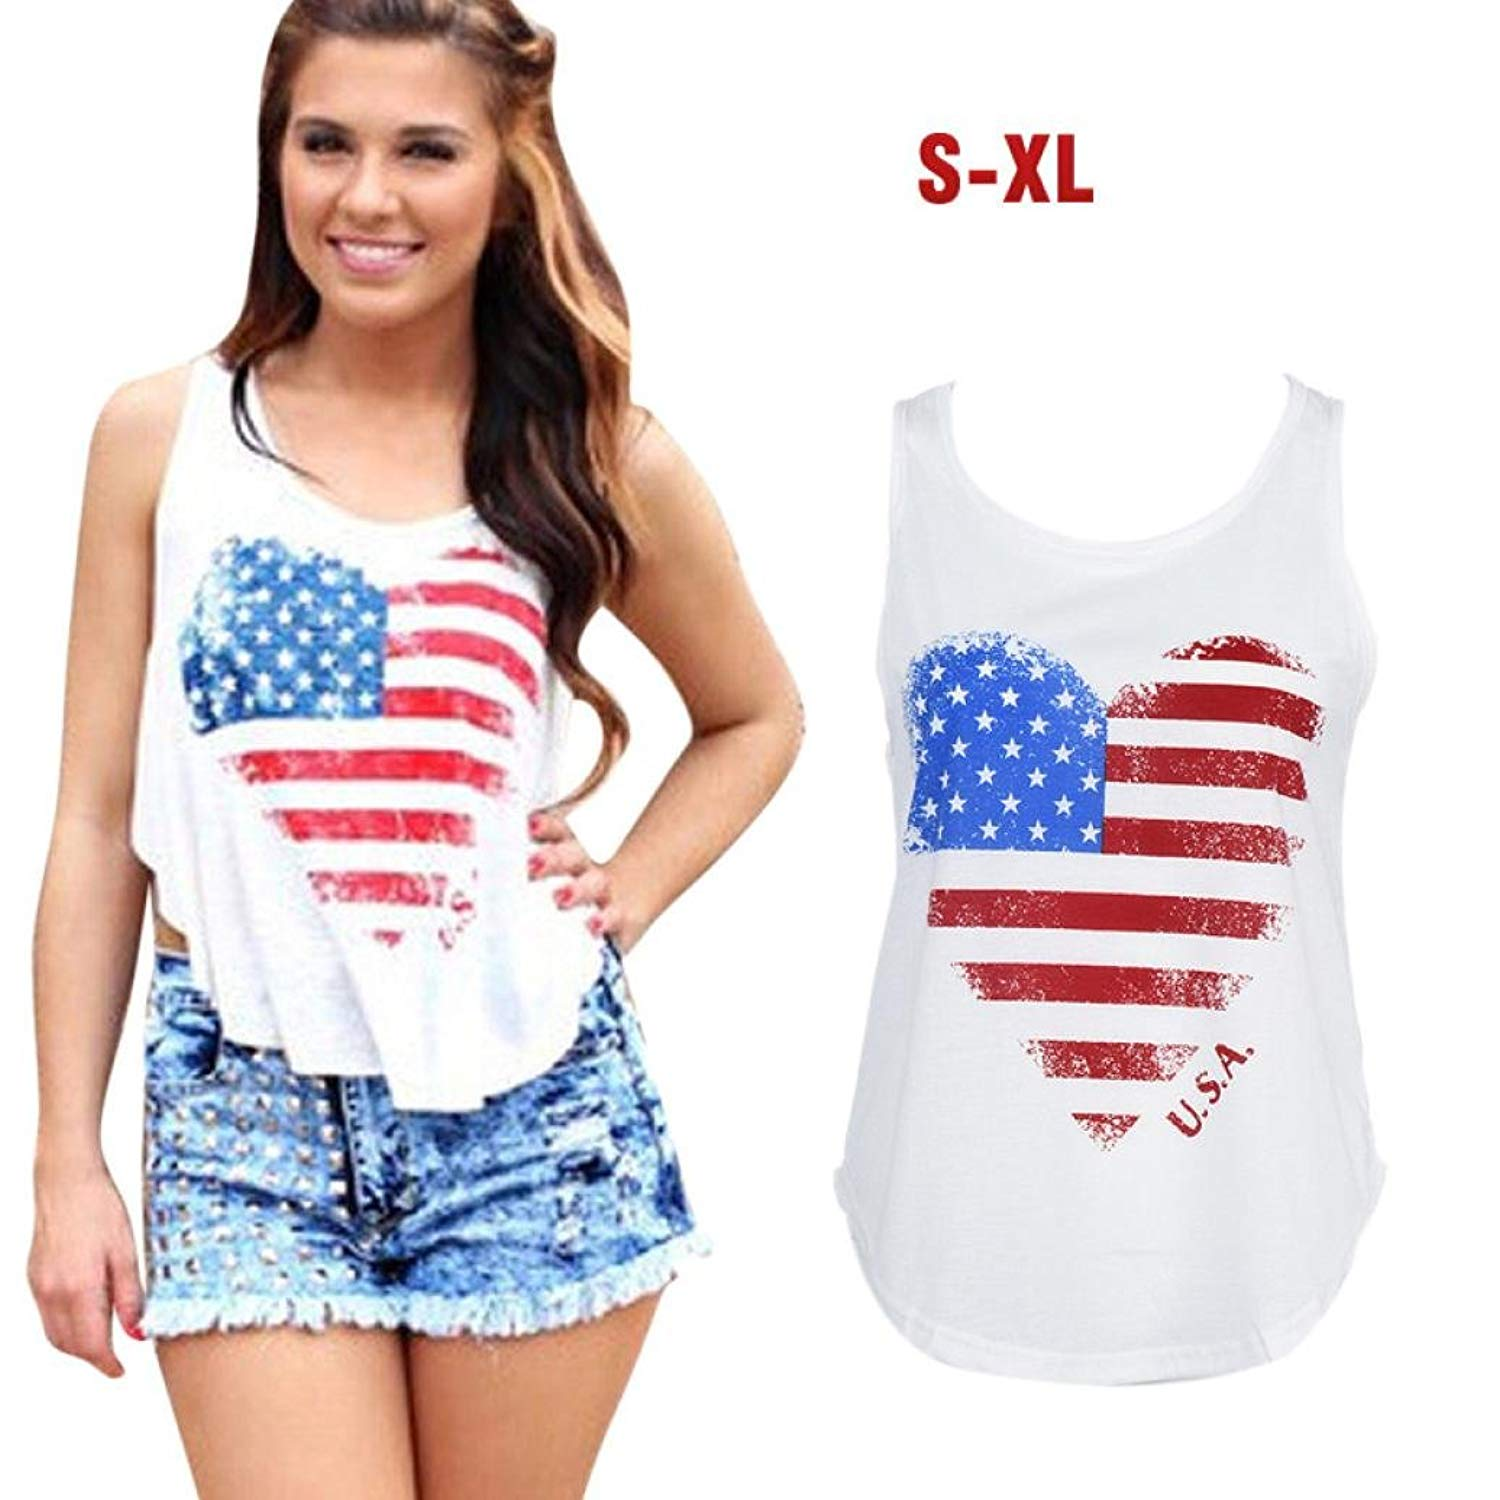 Women Blouse,Sexy USA Flag Print Camisole Ladies Shirt Party Crop Apparel Axchongery